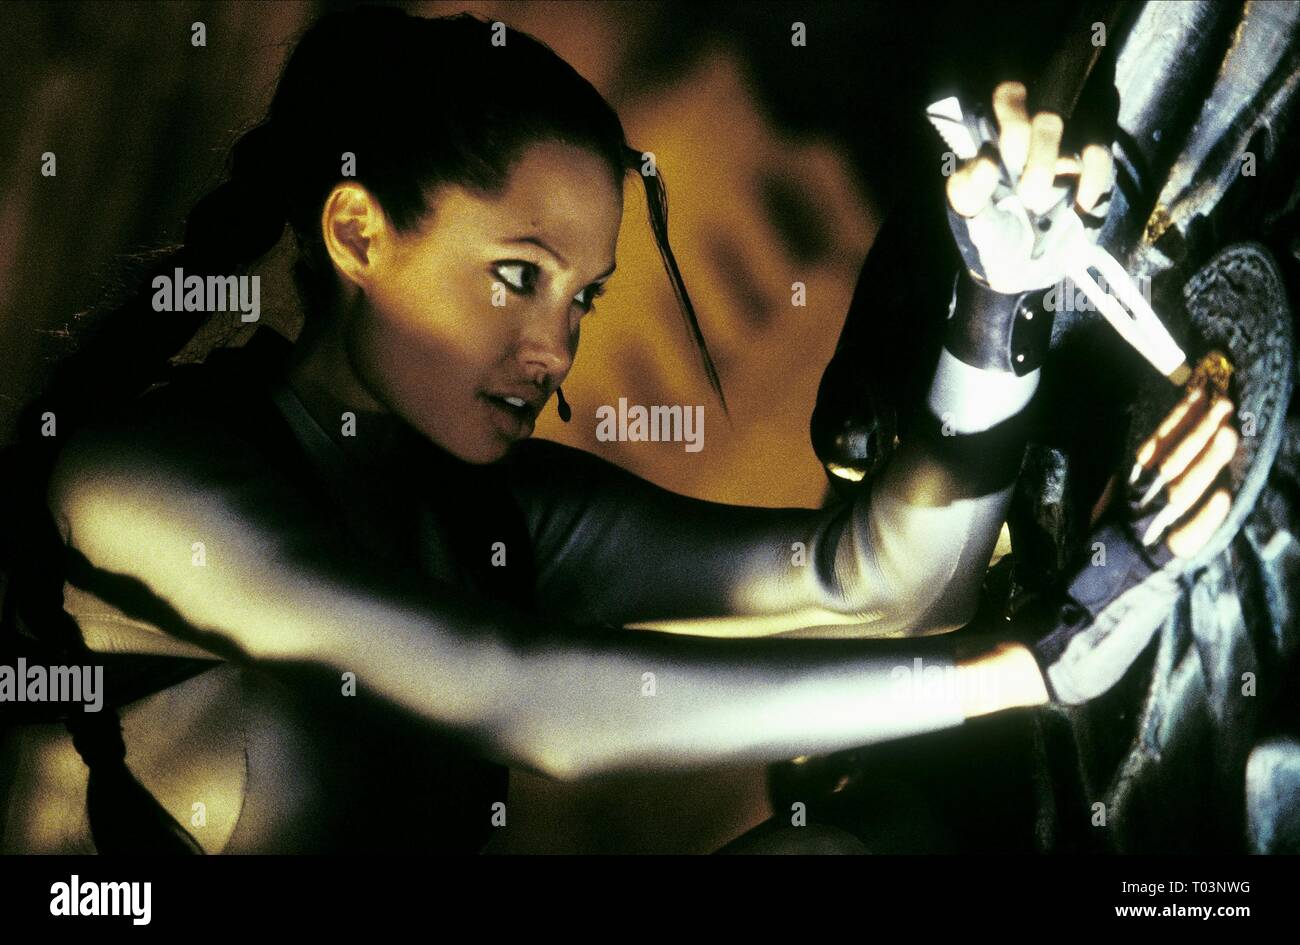 Angelina Jolie Lara Croft Tomb Raider The Cradle Of Life 2003 Stock Photo Alamy